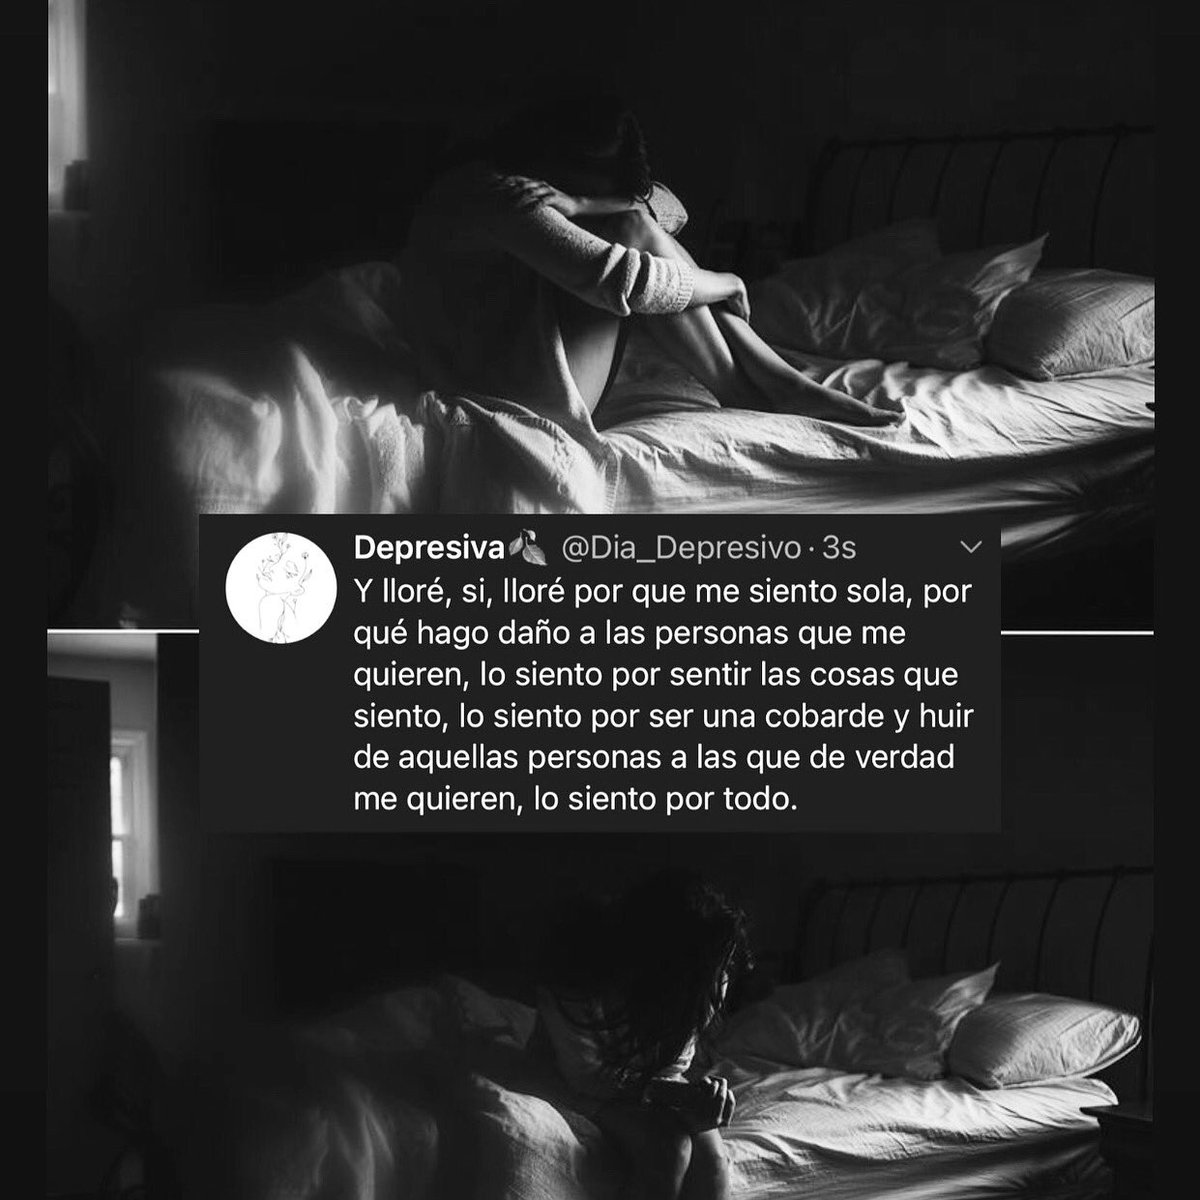 Y lloré... • • •  #sad #love #quotes #follow #like #followforfollowback #instagram #loveyourself #shayari #happy #life #bhfyp #instadaily #likes #likeforlikes #lovequotes #writer #art #thoughts #music #poetry #memes #yourself #viral #photooftheday #photography #sadedits #mood https://t.co/kD7TUURVGo